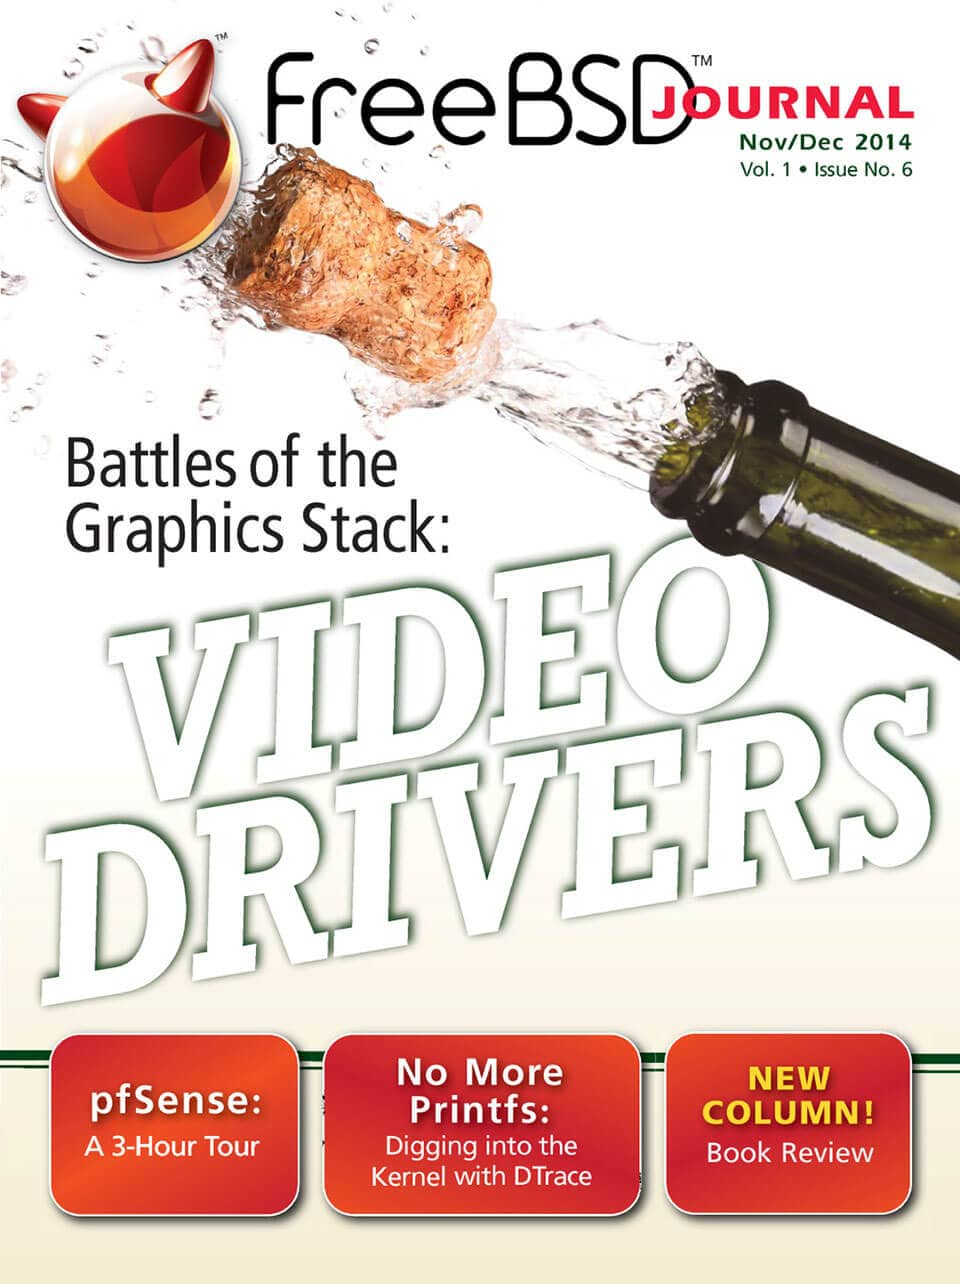 Video-Drivers